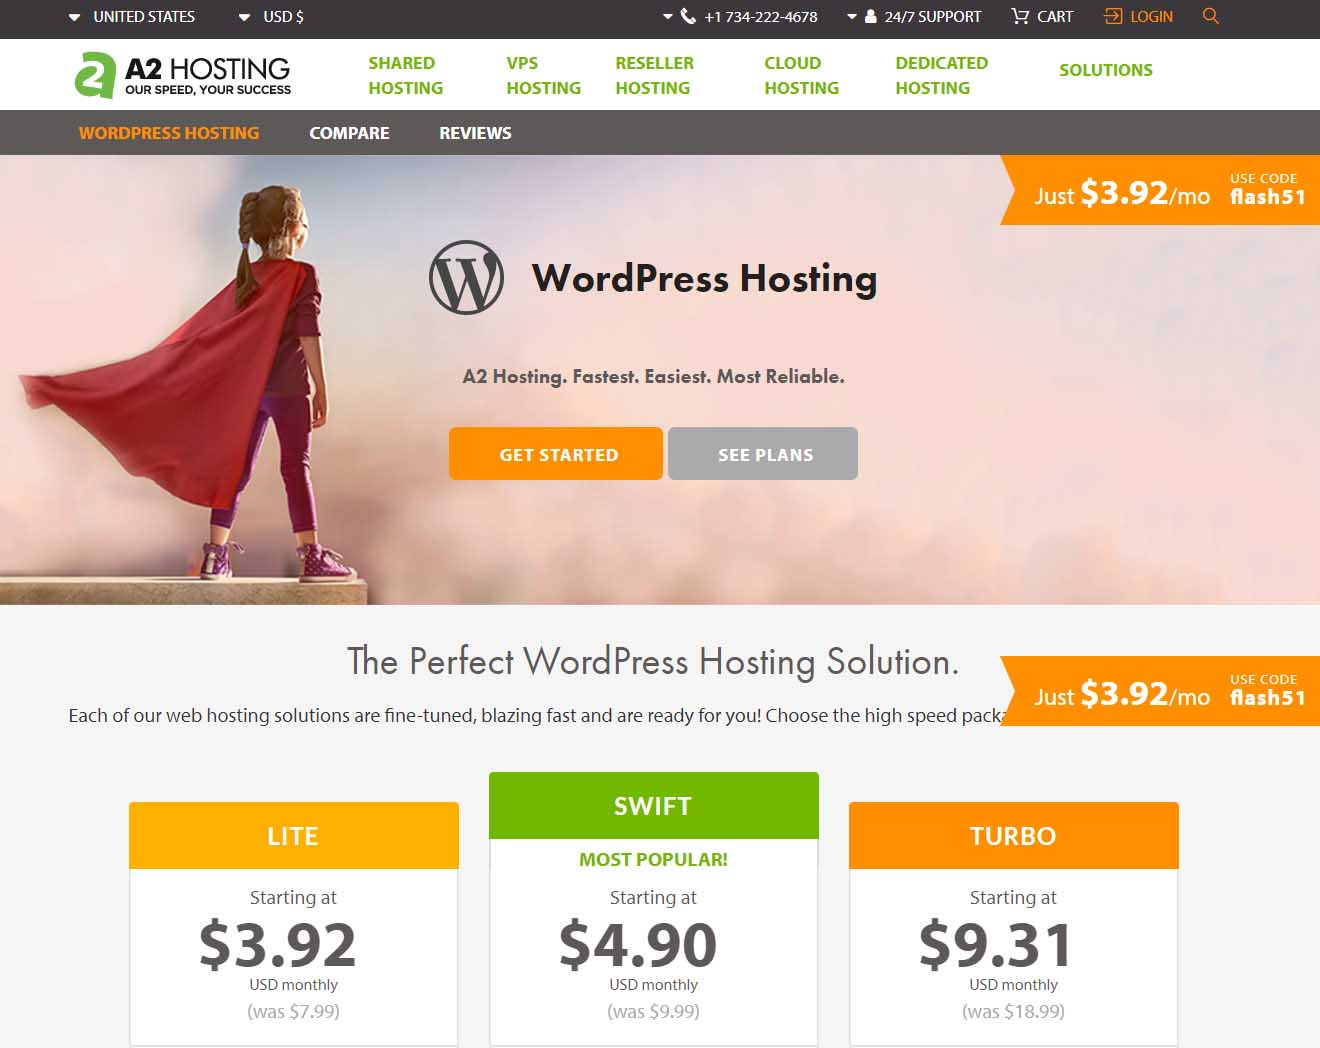 a2hosting-best-wordpress-hosting-provider